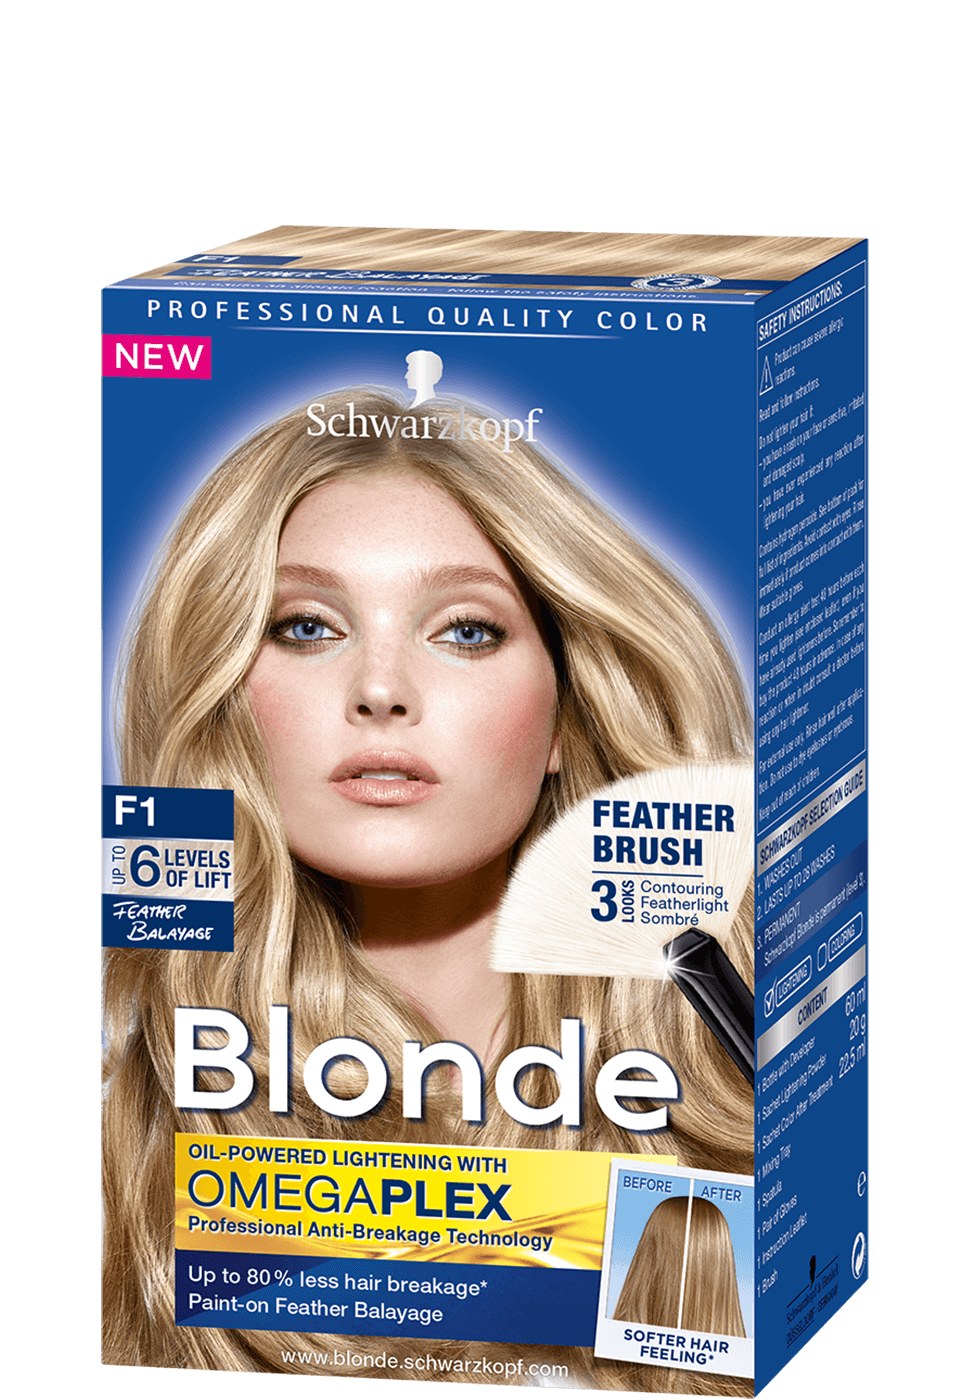 Blonde Strands F1 Feather Balayage